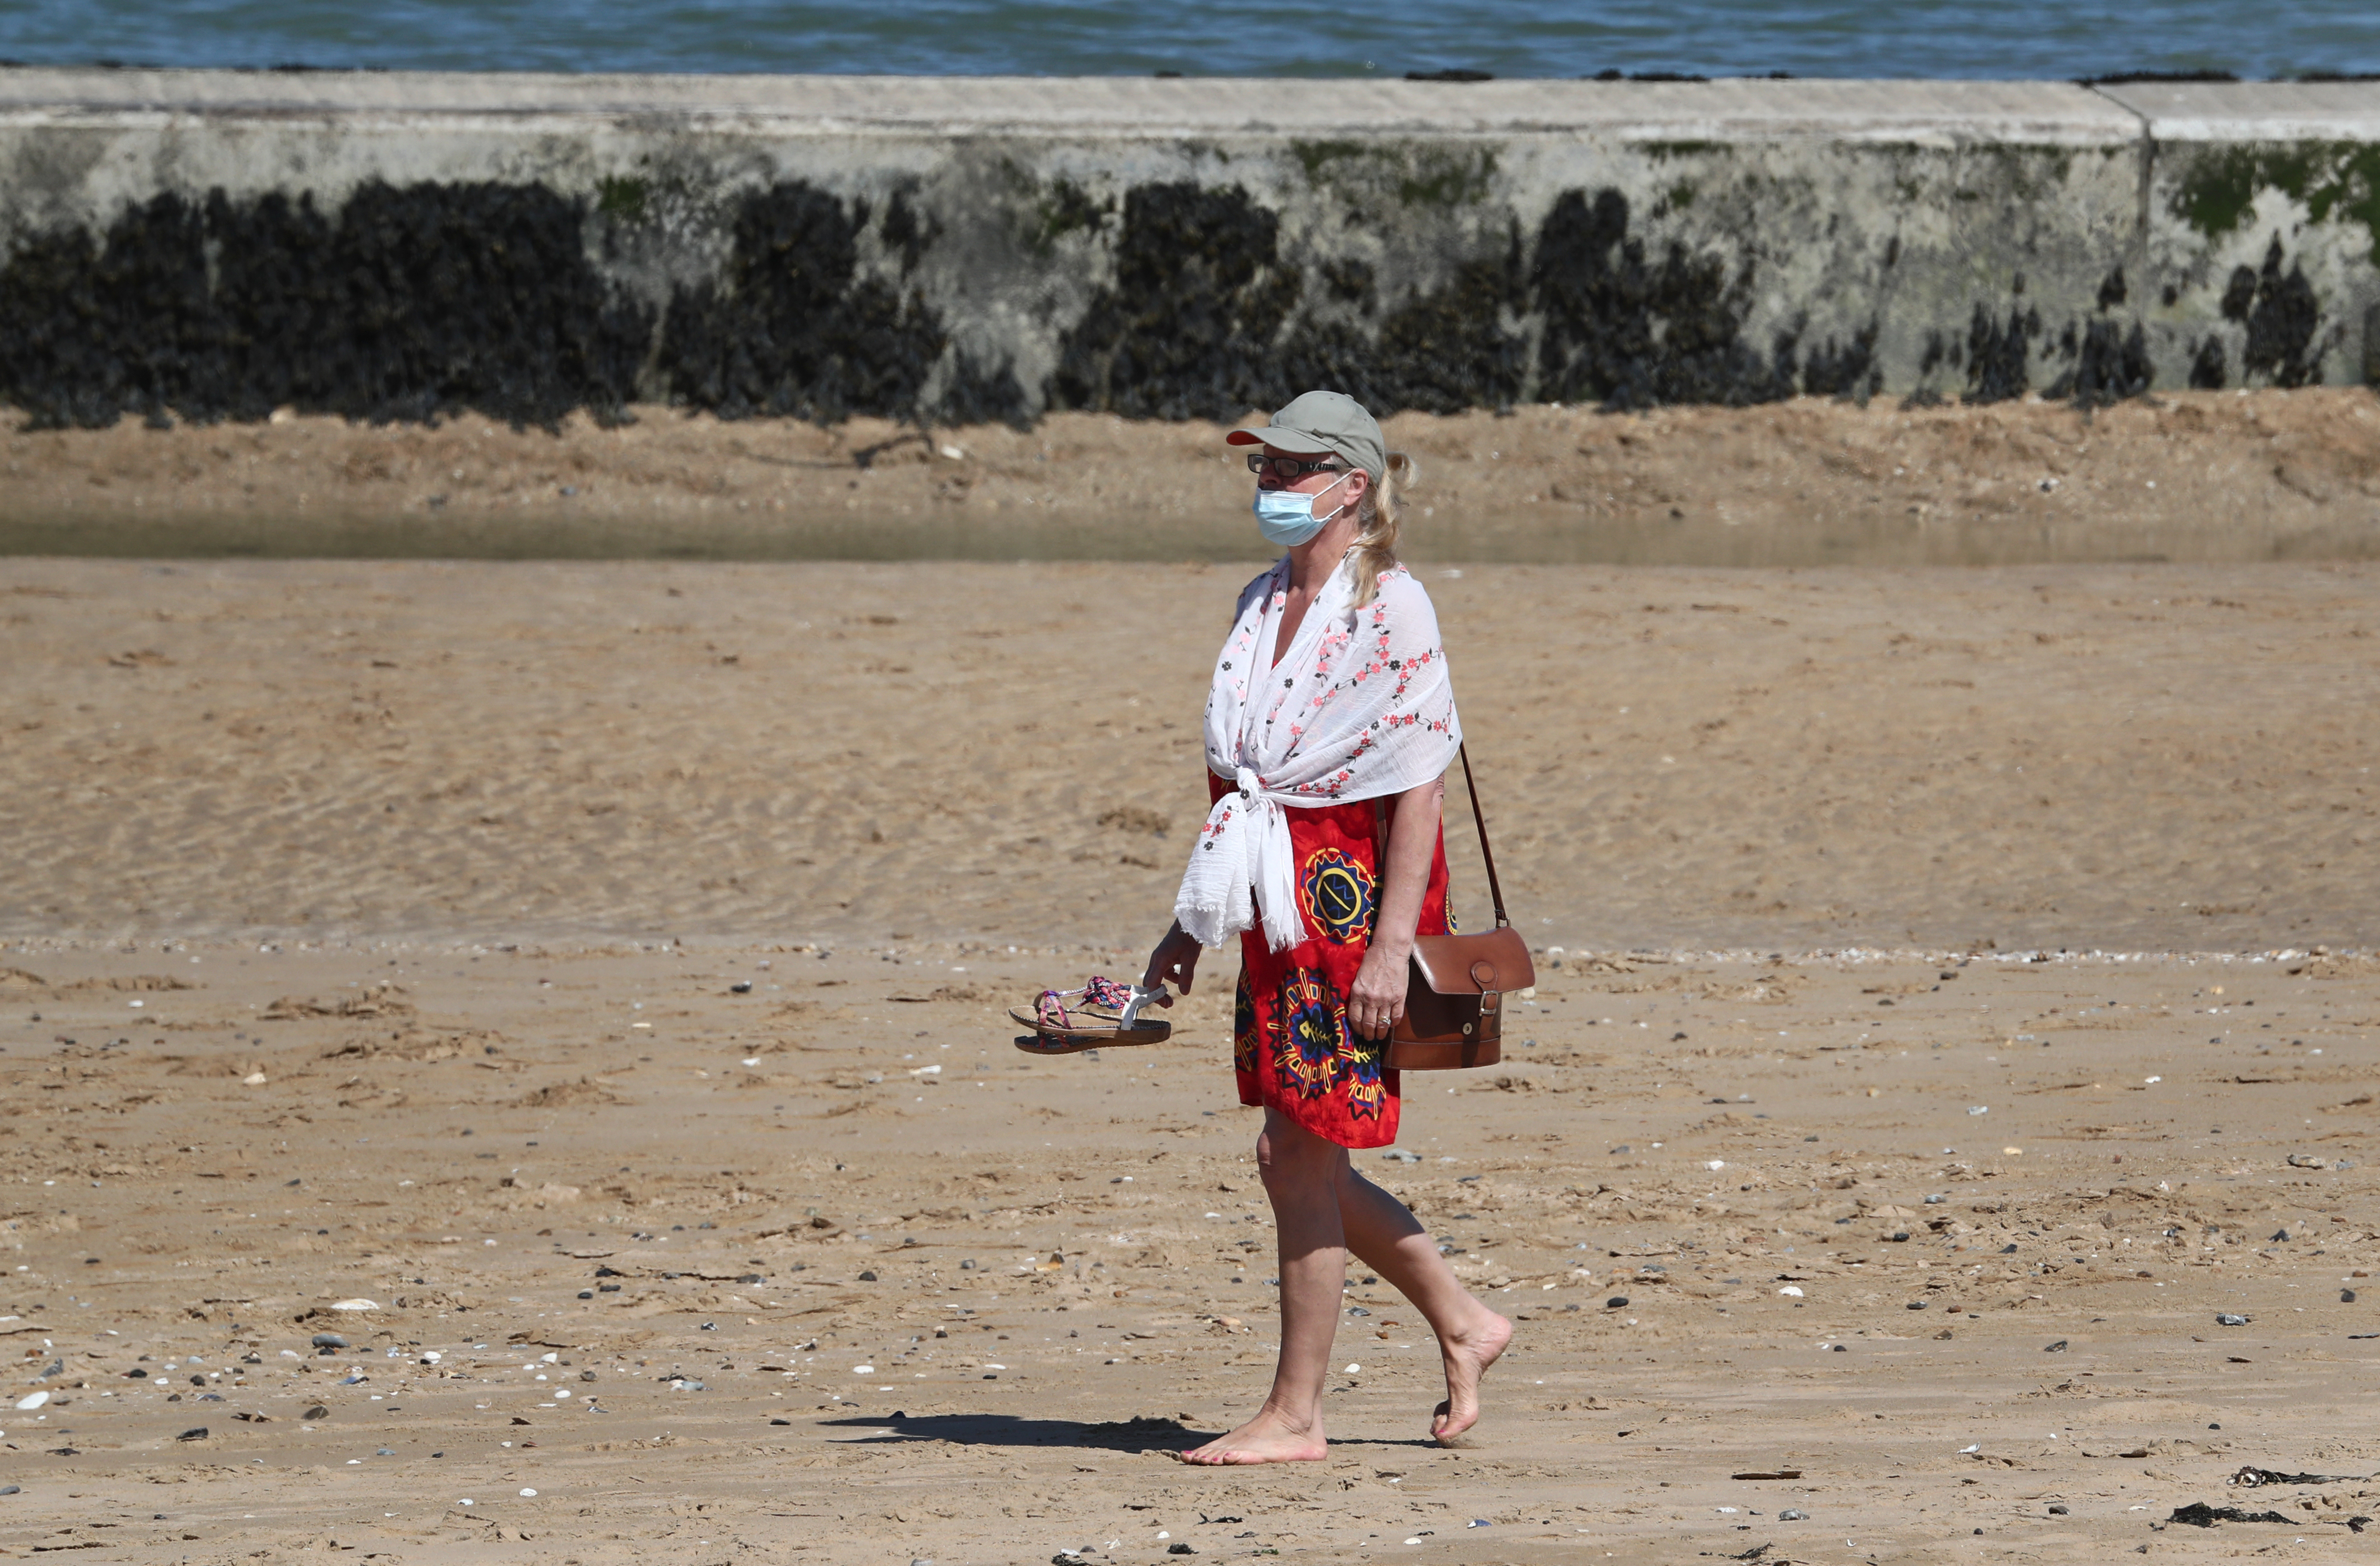 A lady in a mask walks on the beach in Margate, Kent, as the UK continues in lockdown to help curb the spread of the coronavirus.